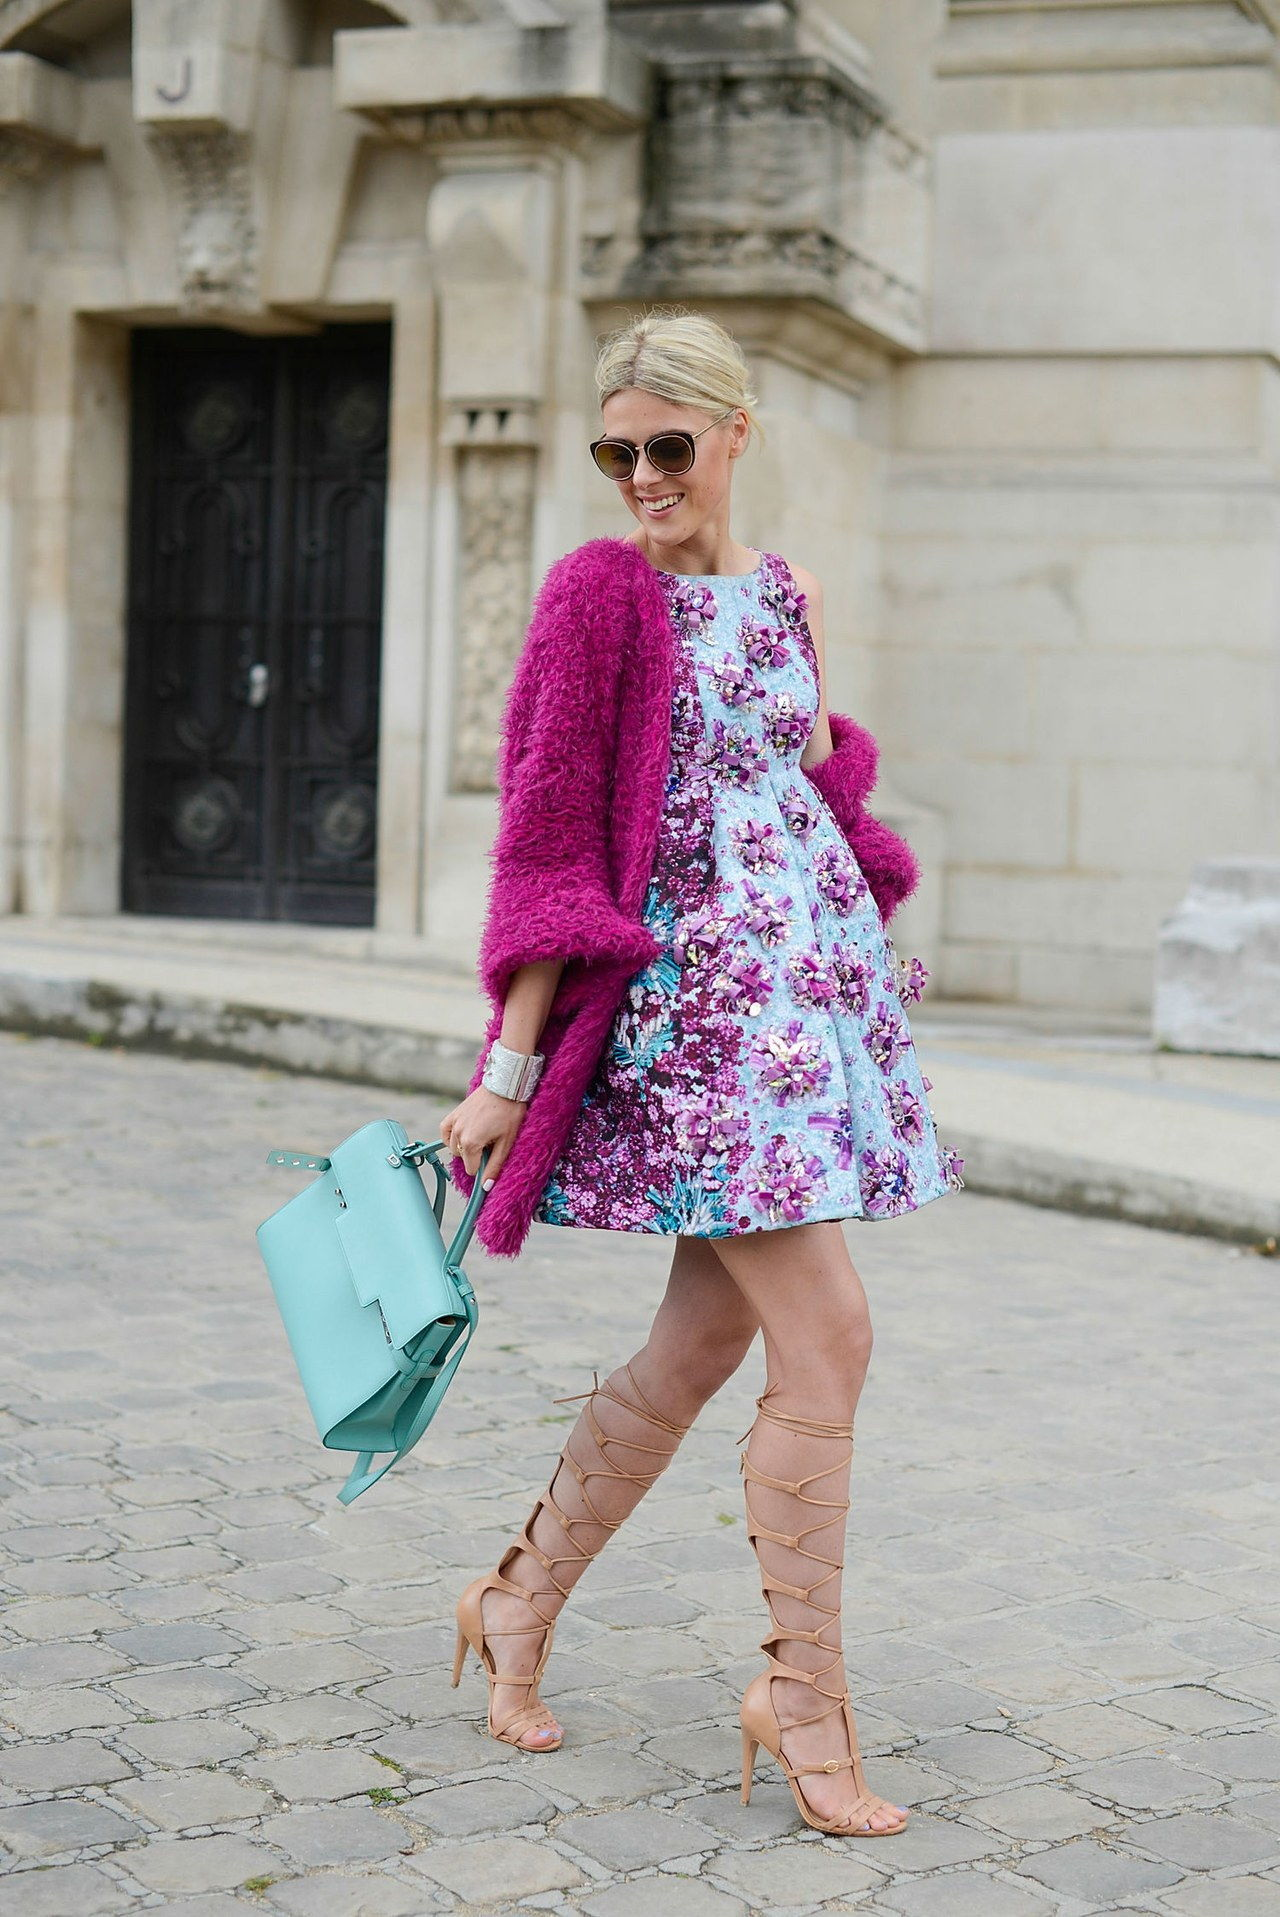 sofie valkiers mary katrantzou floral dress paris street style